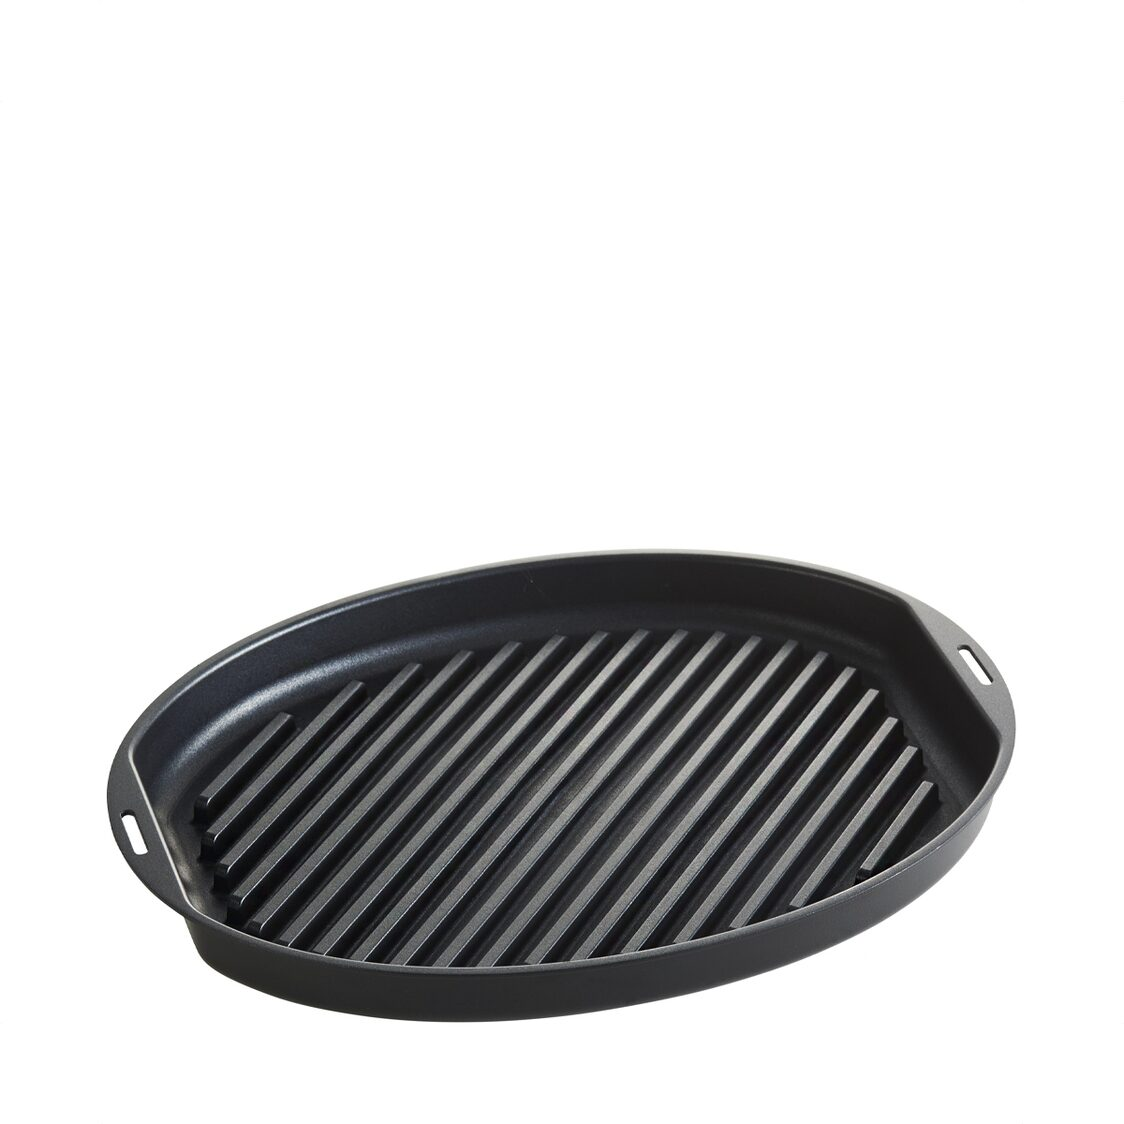 Grill Plate for Oval Hot Plate